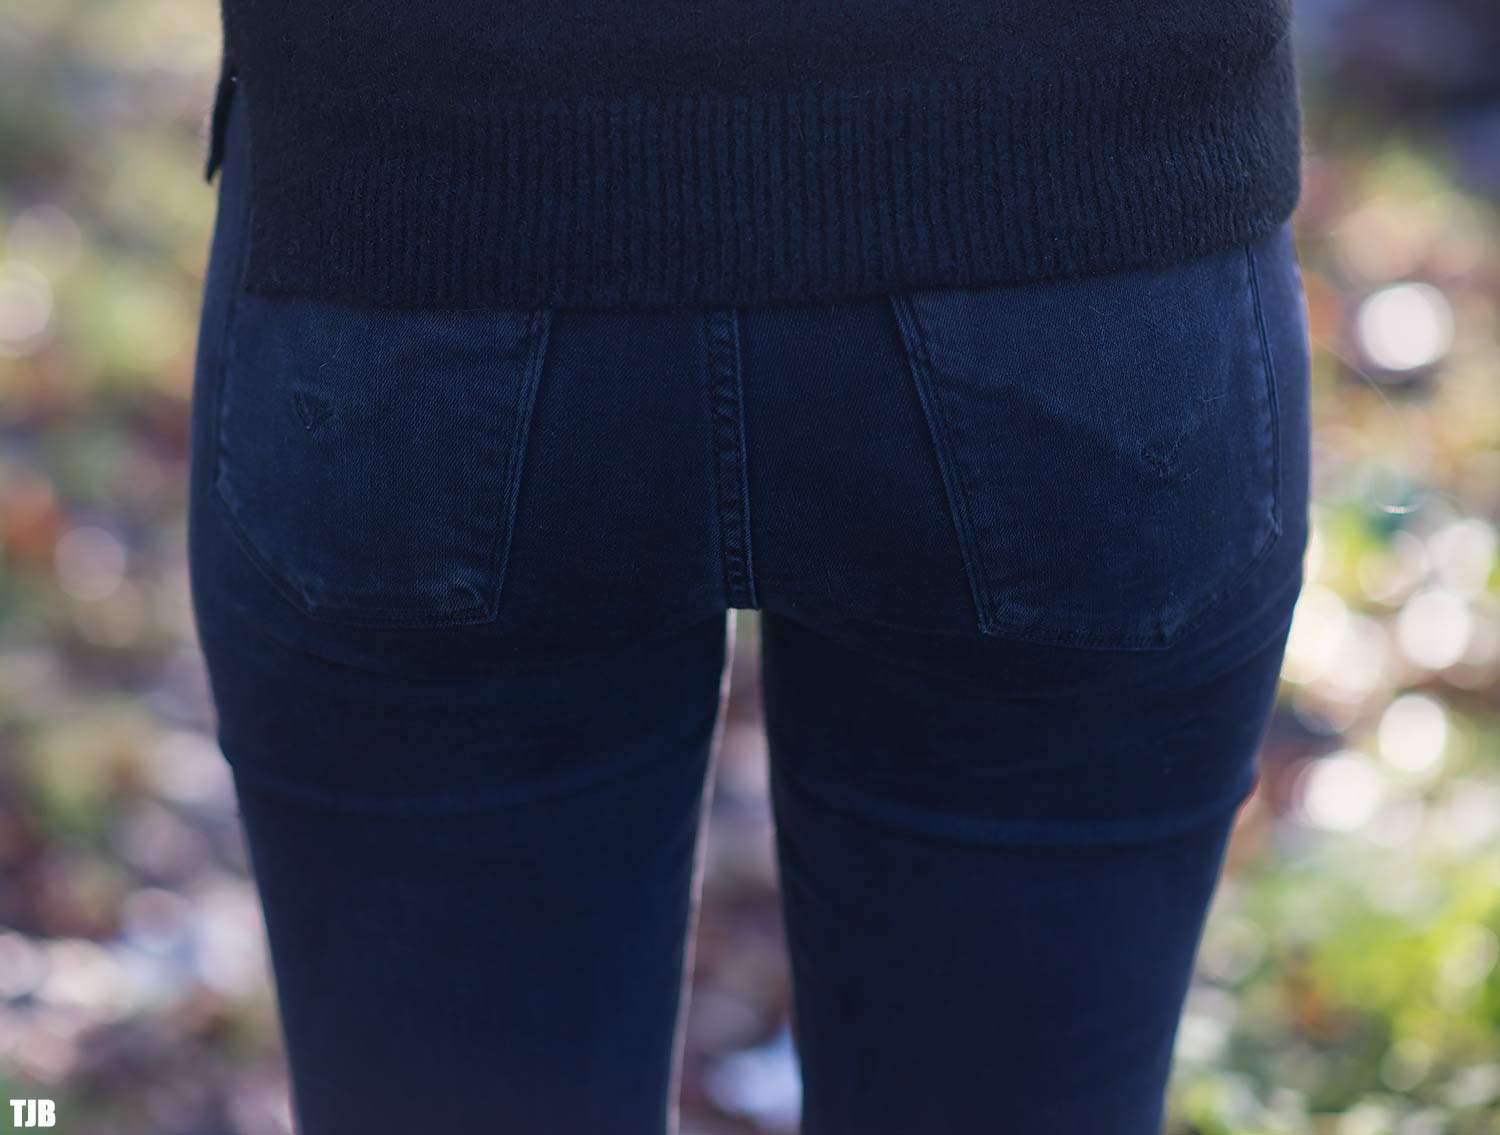 hudson-barbara-black-jeans-double-review-jeans-blog